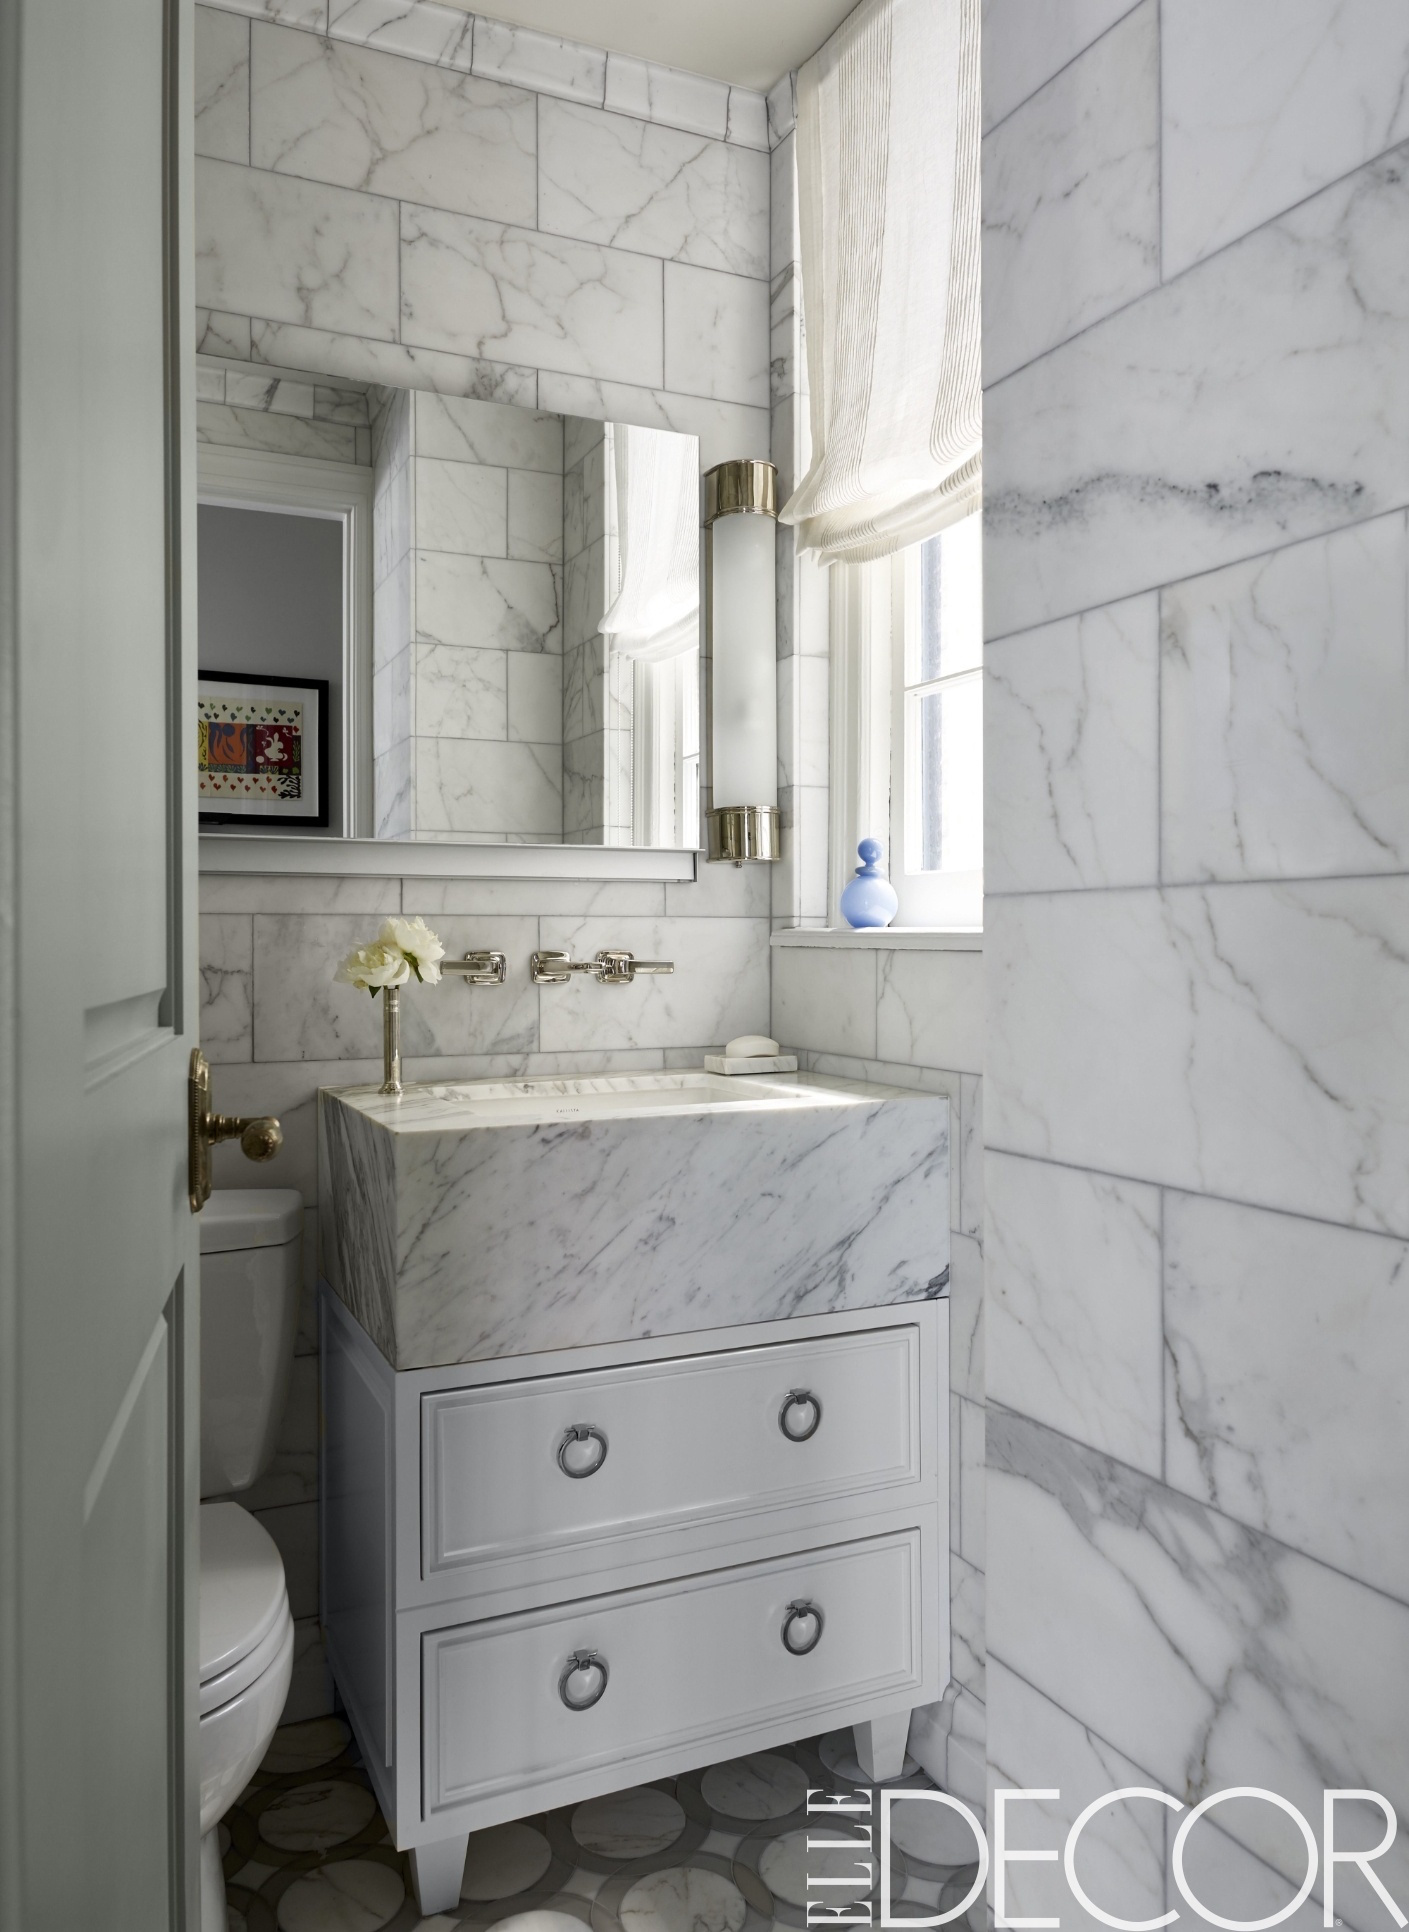 small bathrooms 35 best small bathroom ideas - small bathroom ideas and designs PGJQGUX